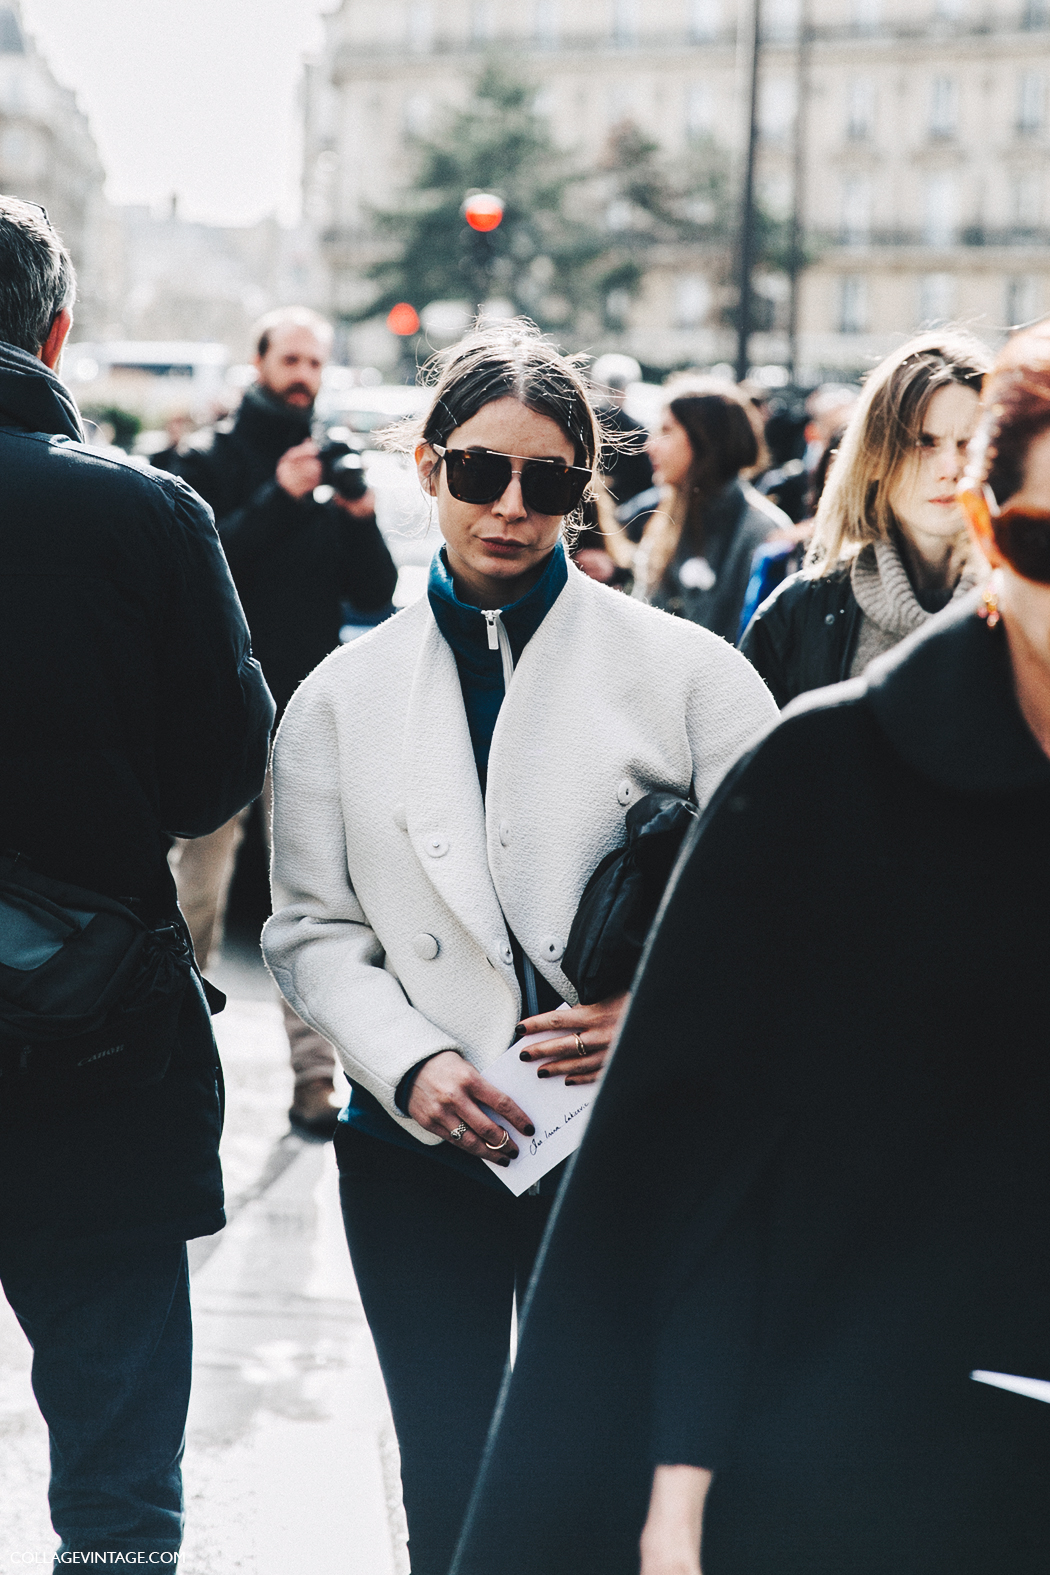 PFW-Paris_Fashion_Week_Fall_2016-Street_Style-Collage_Vintage-Irina-Lakicevik